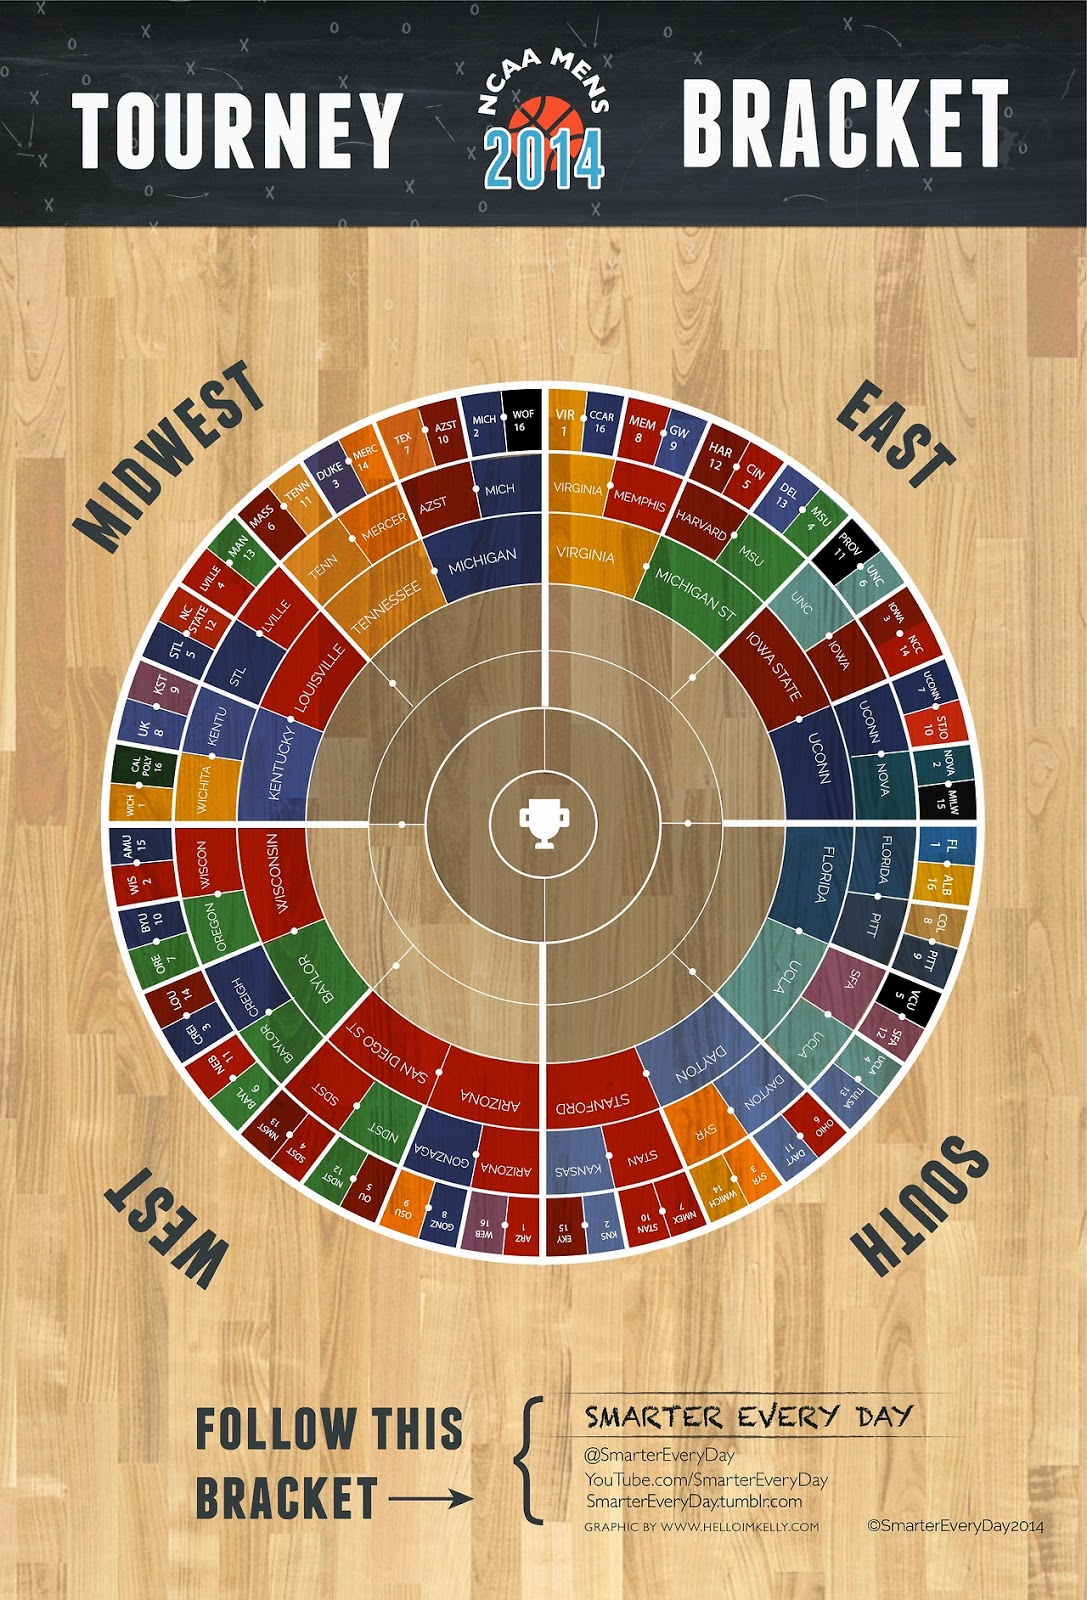 download image ncaa sweet 16 bracket pc android iphone and ipad